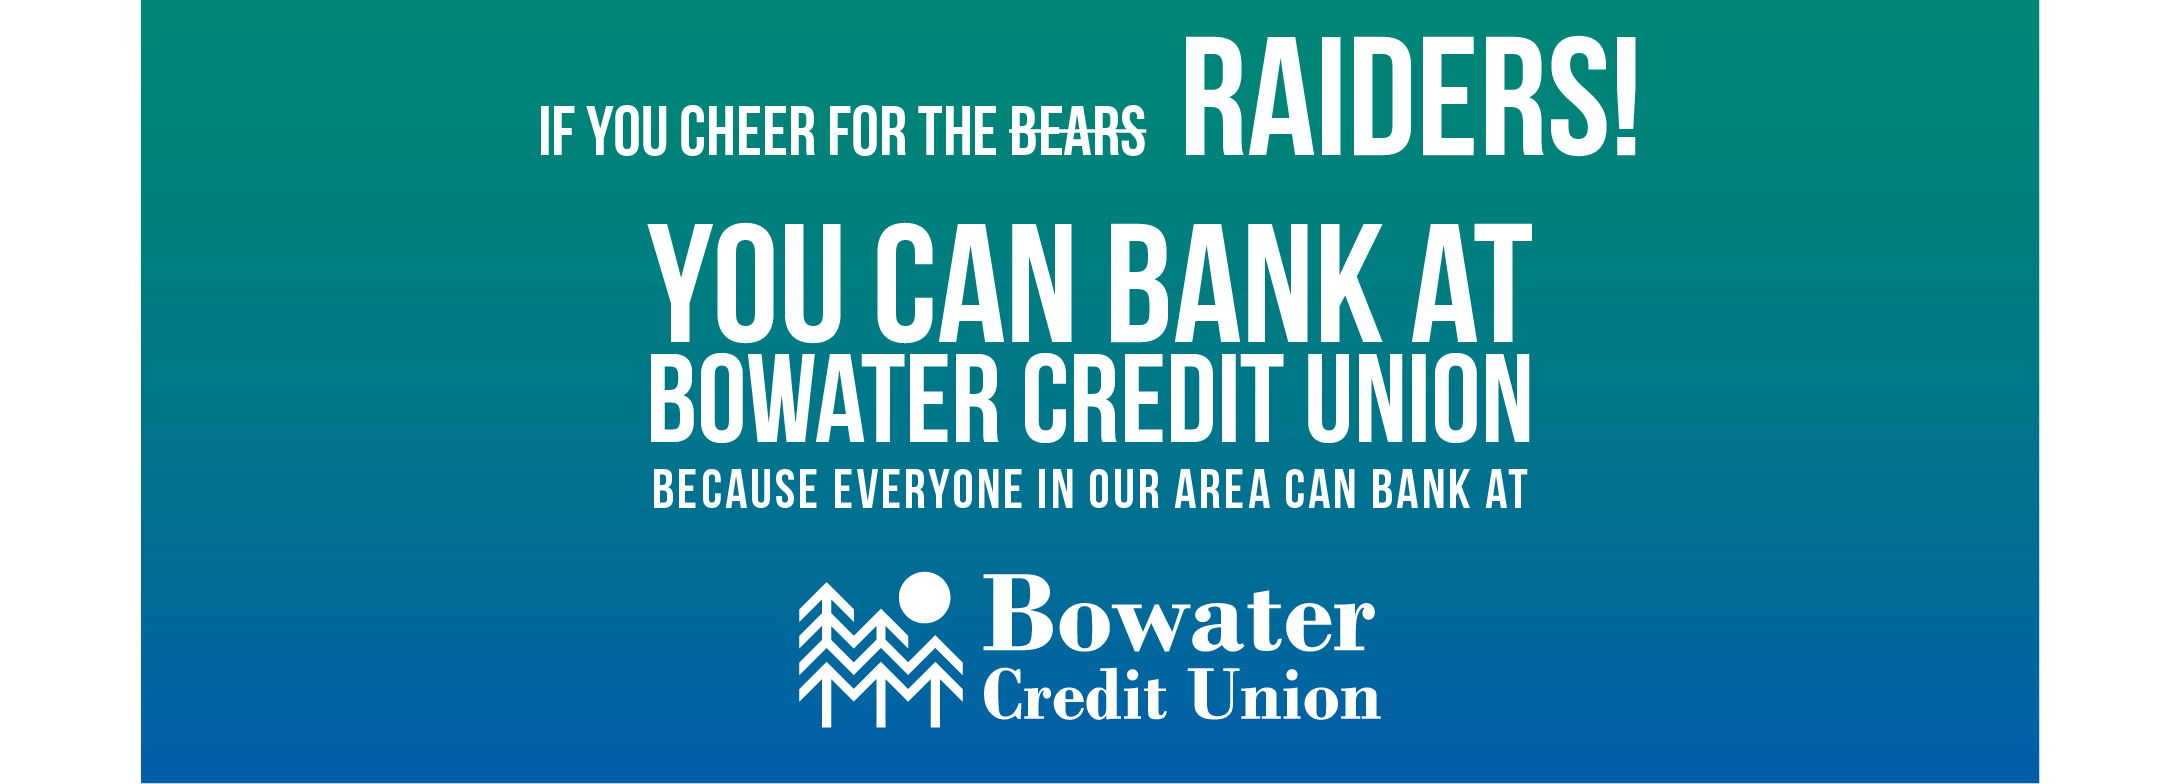 if you cheer for the raiders you can bank at Bowater Credit Union